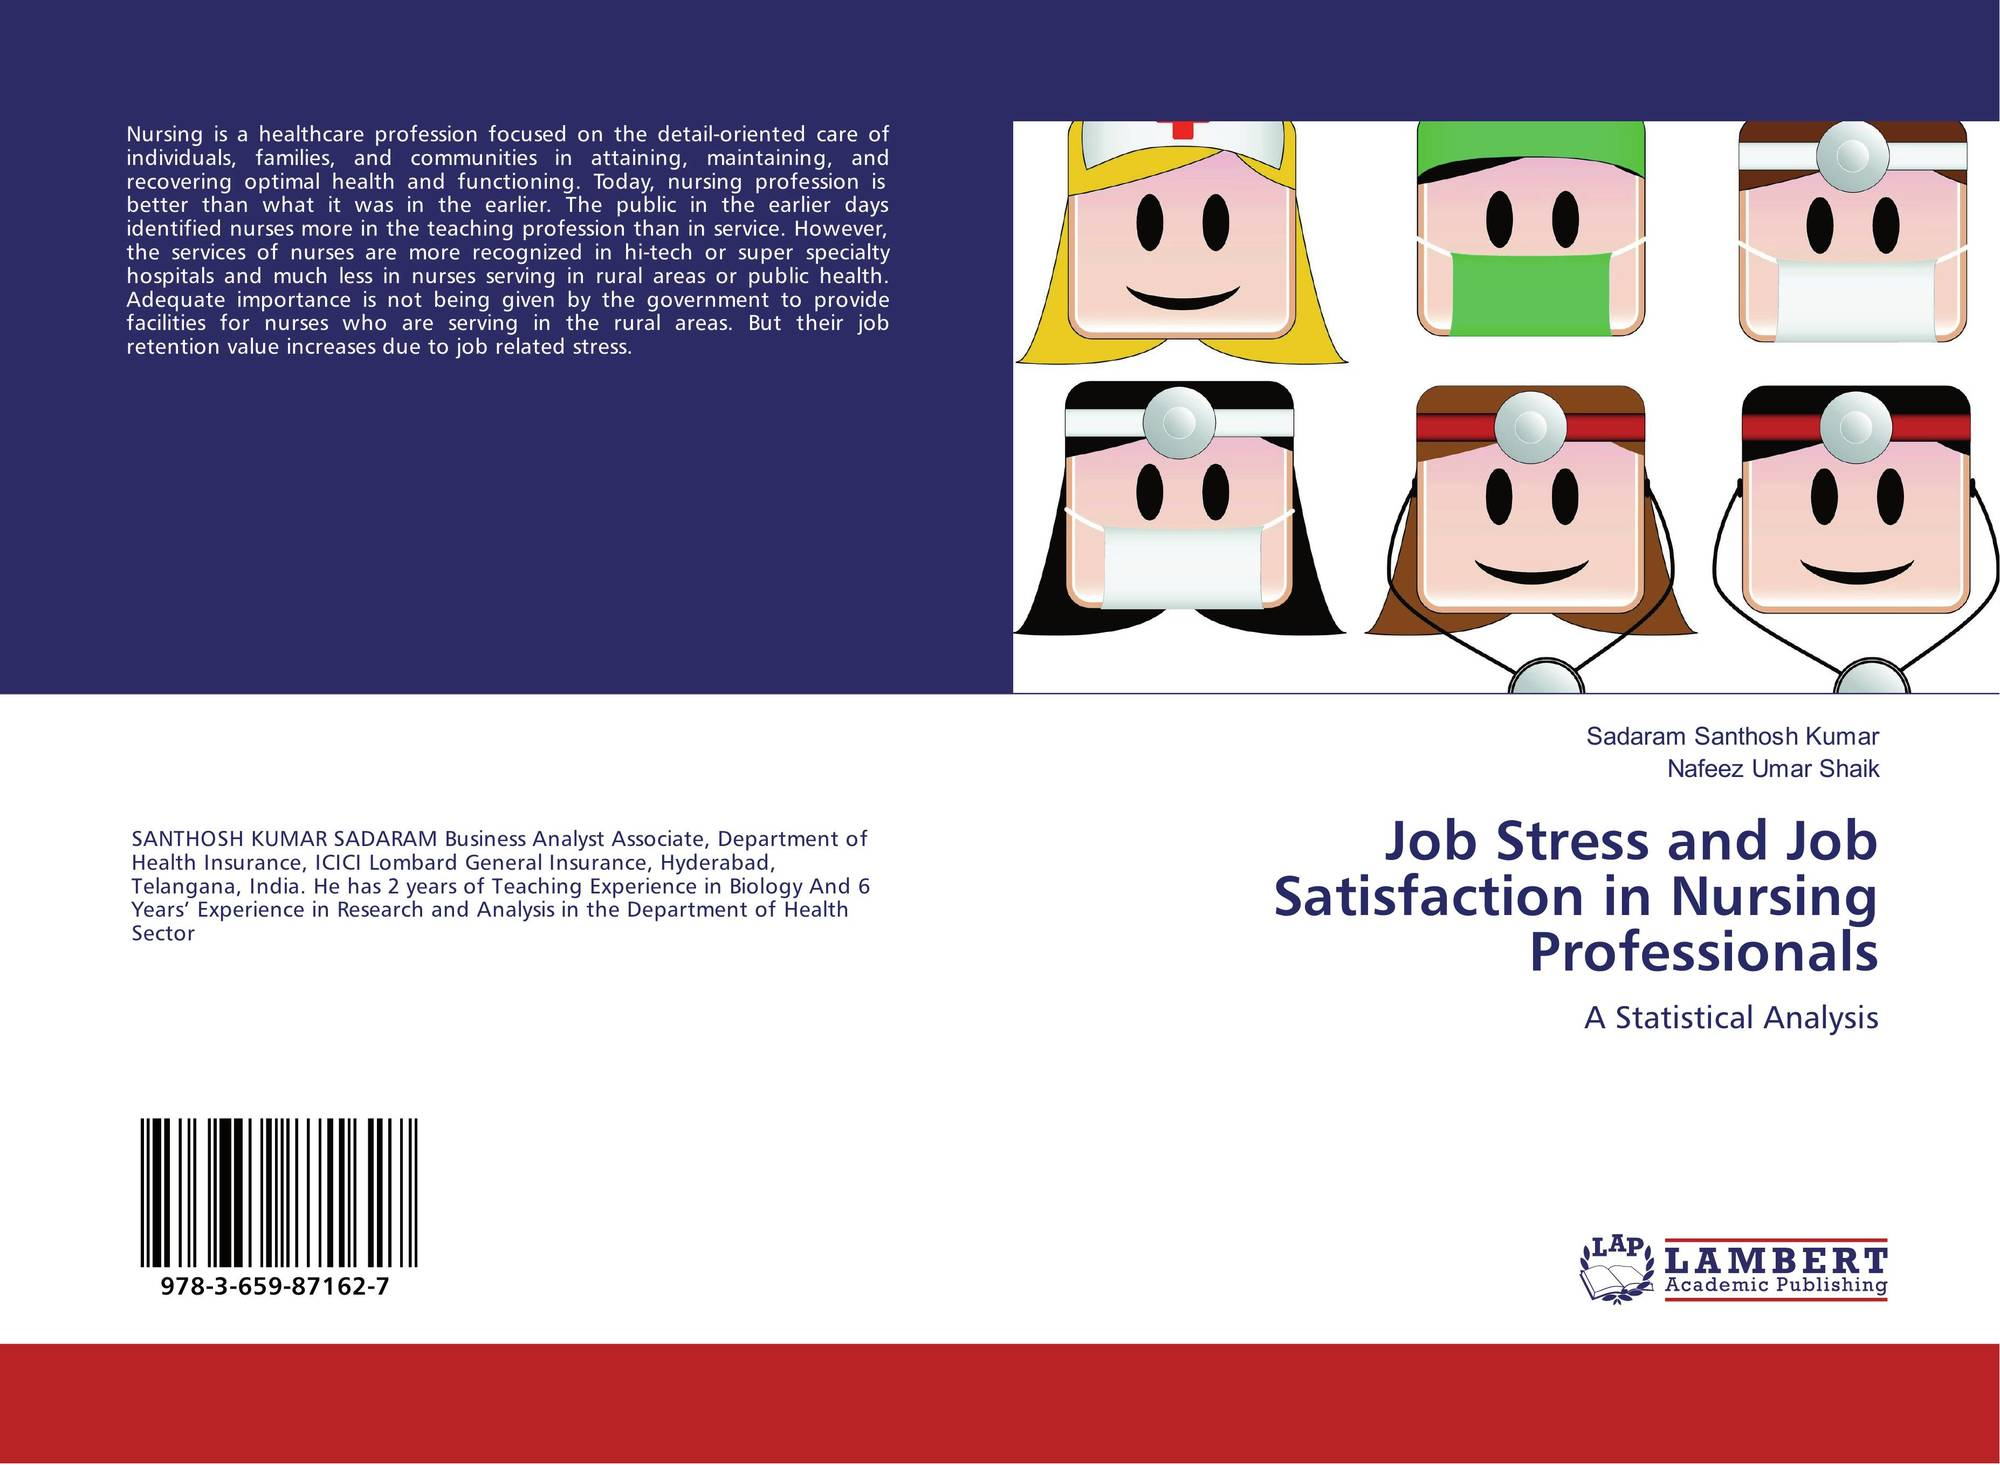 stress and job satisfaction of icu nurses Research article job satisfaction and burnout among intensive care unit nurses and physicians  with regard to job satisfaction, job stress, or burnout scores.